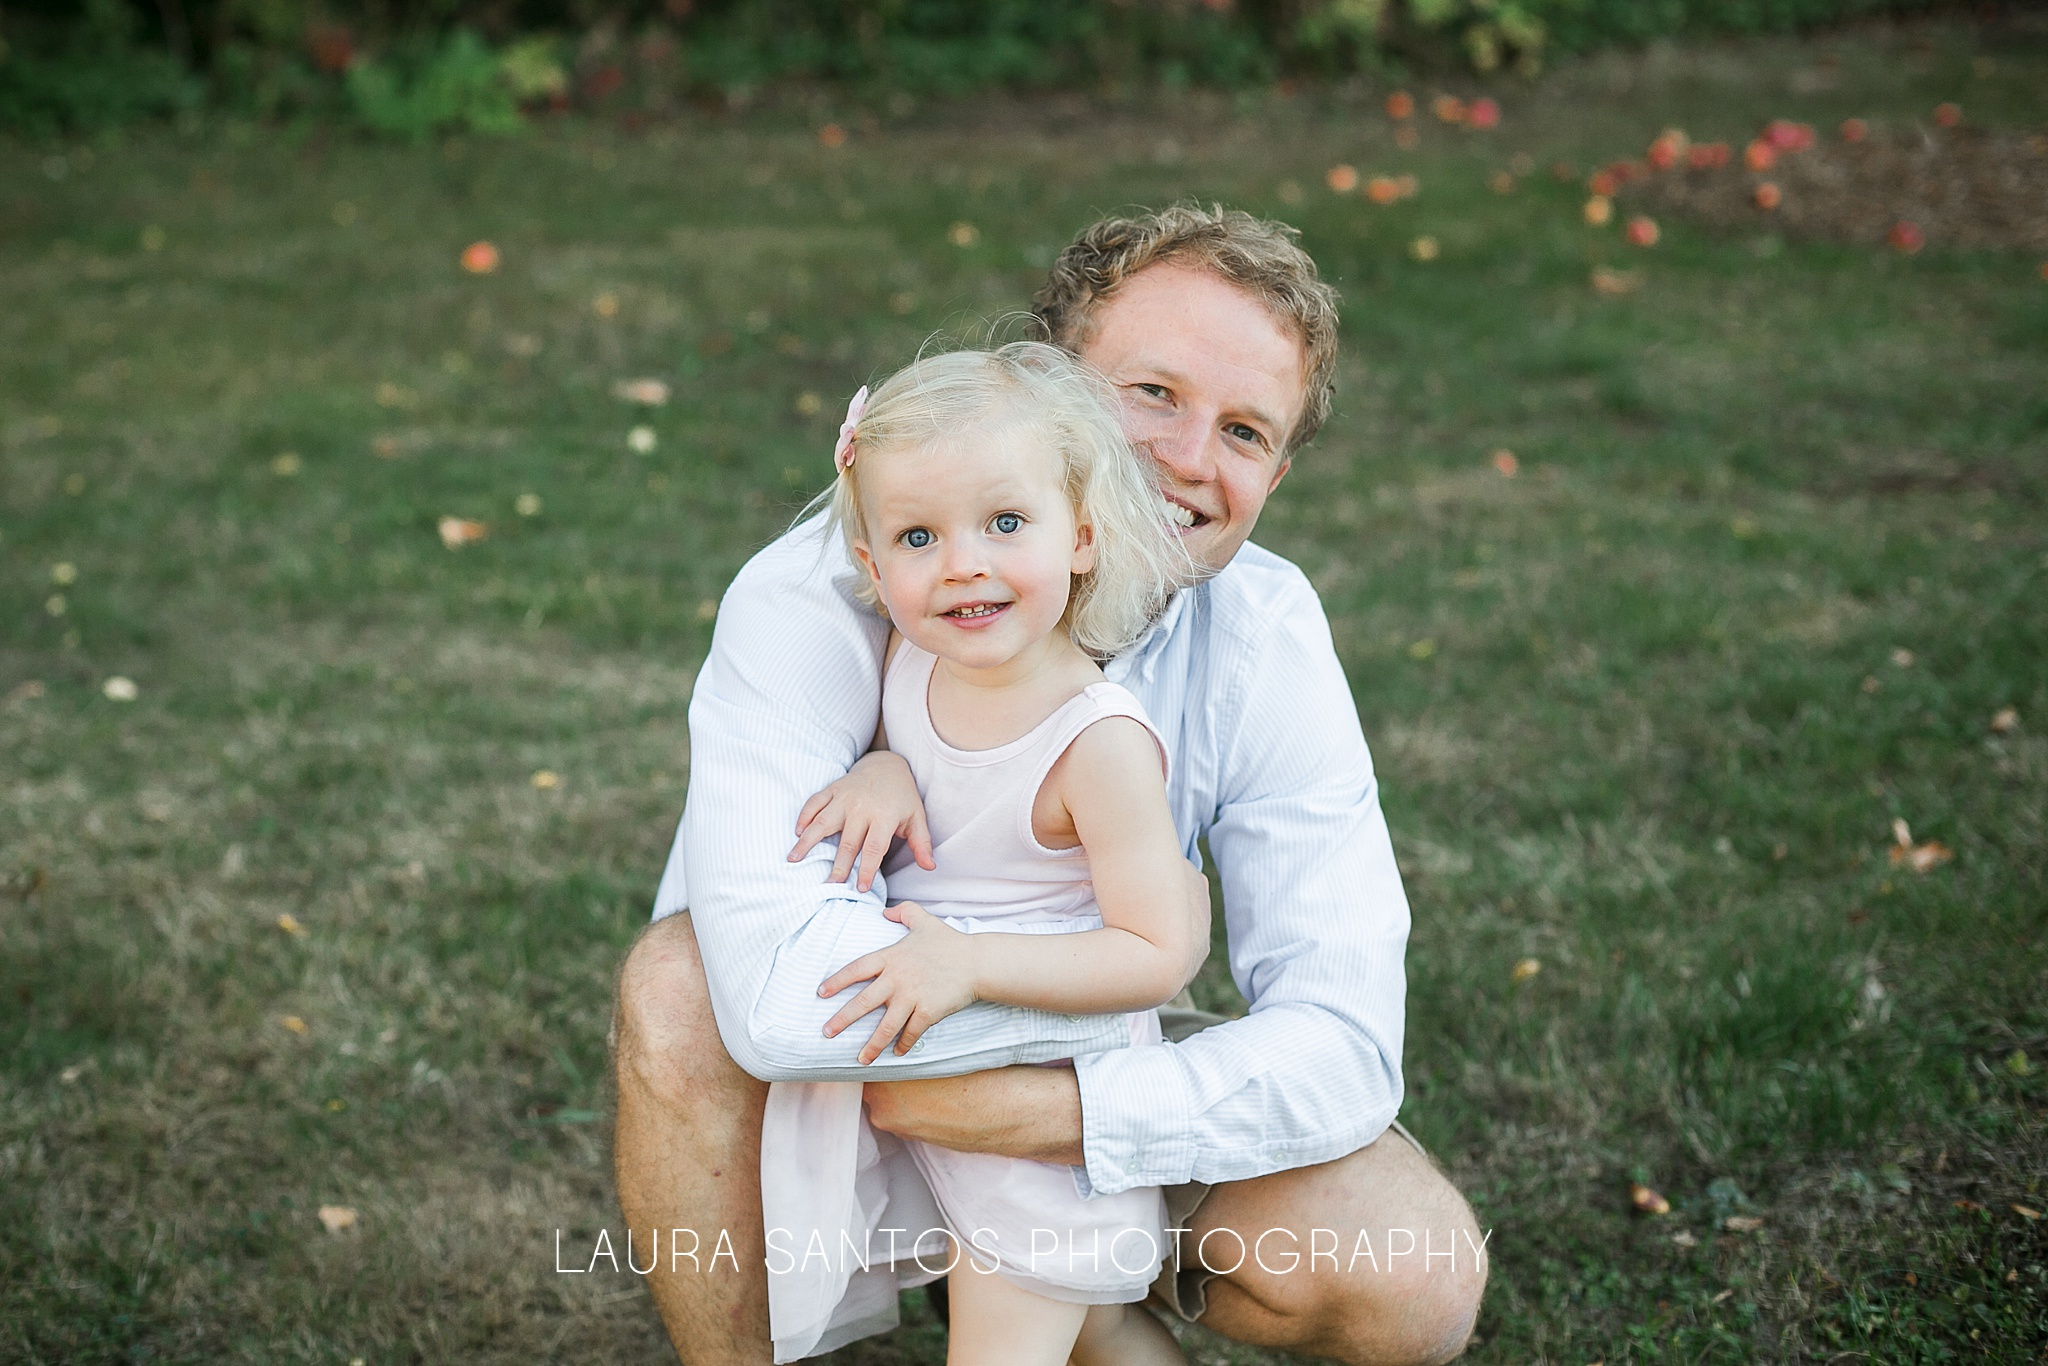 Laura Santos Photography Portland Oregon Family Photographer_0732.jpg